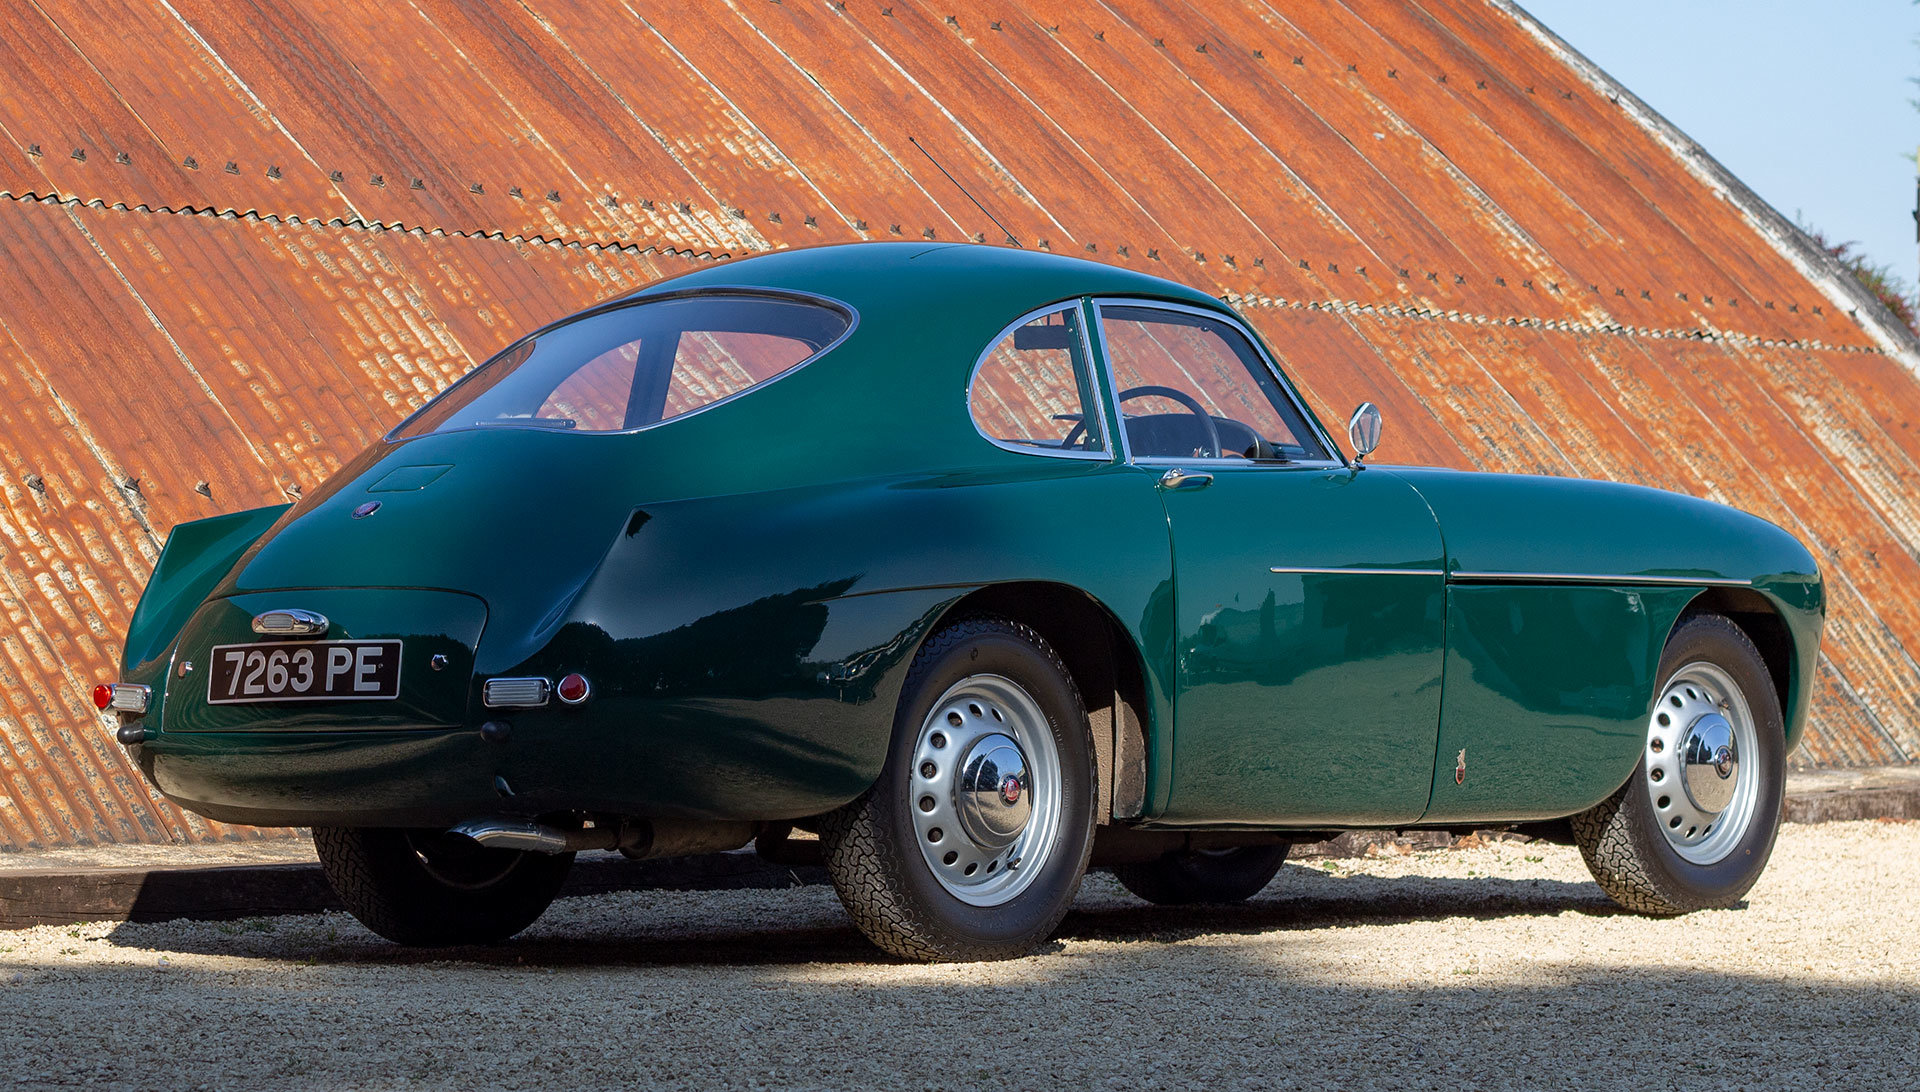 1955 Bristol 404 Coupé - £40k mechanical rebuild in 2019 For Sale (picture 5 of 19)